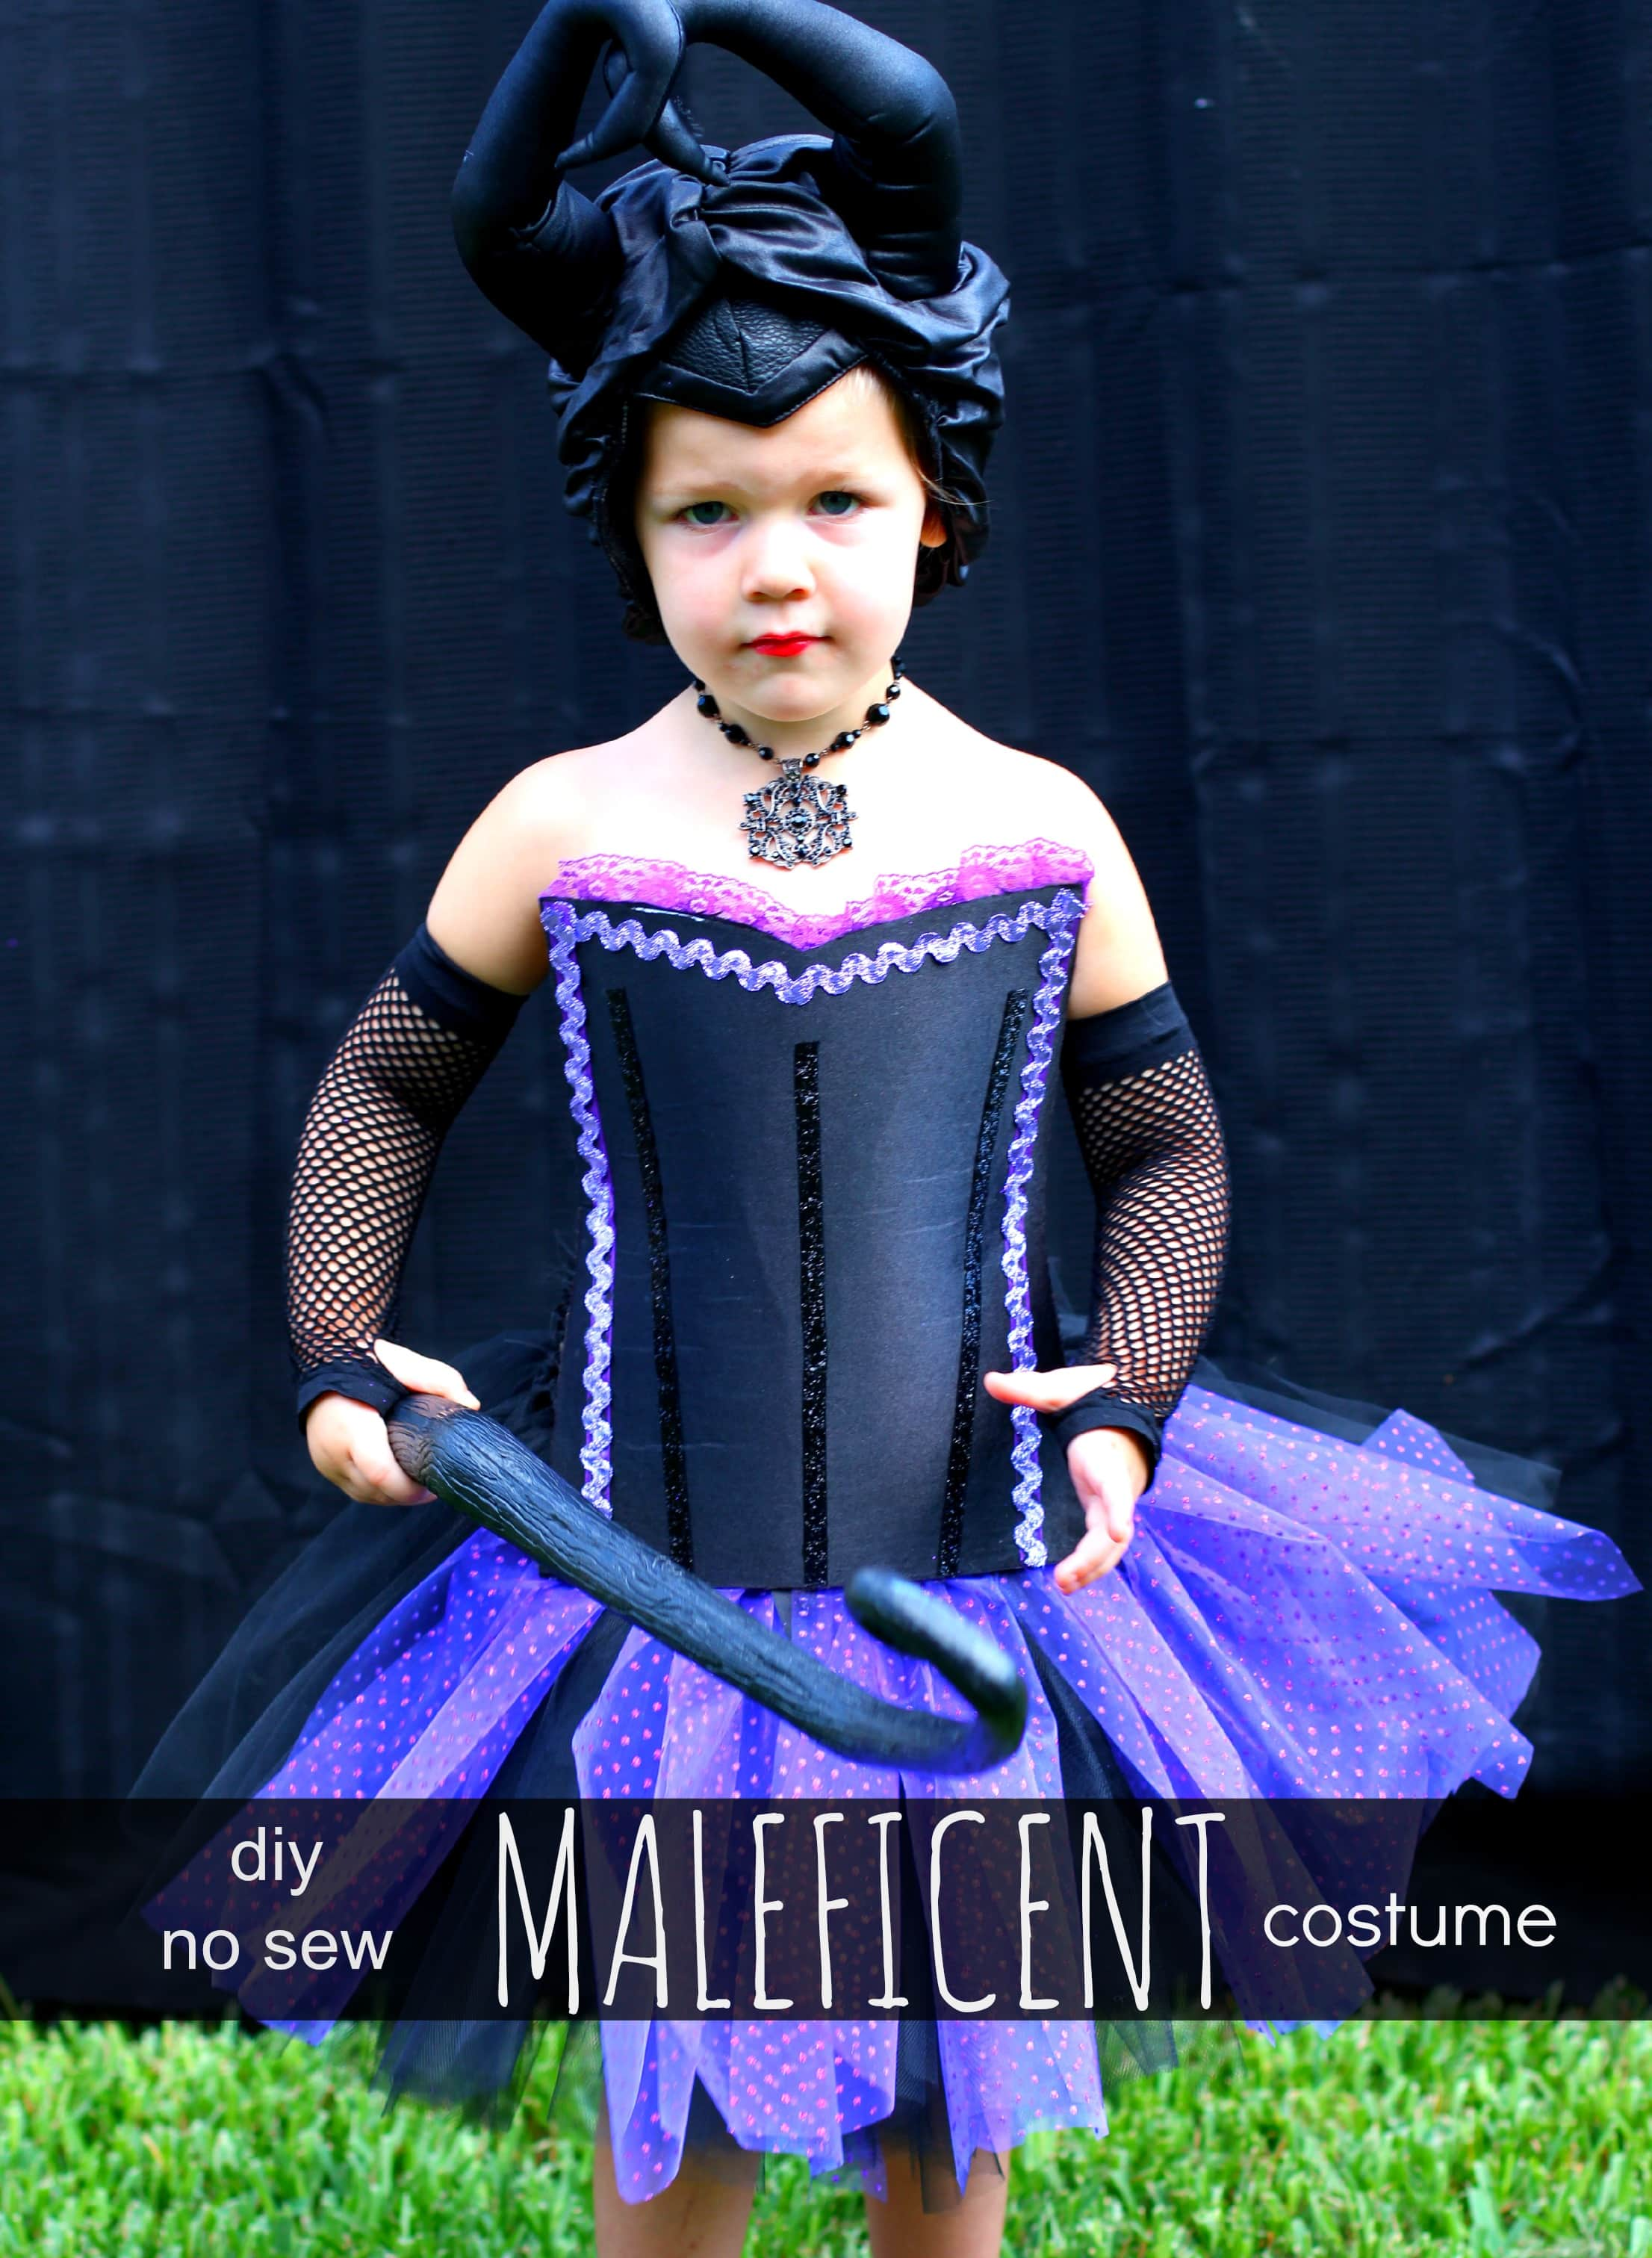 DIY No Sew Maleficent Costume via PinkWhen.com 2